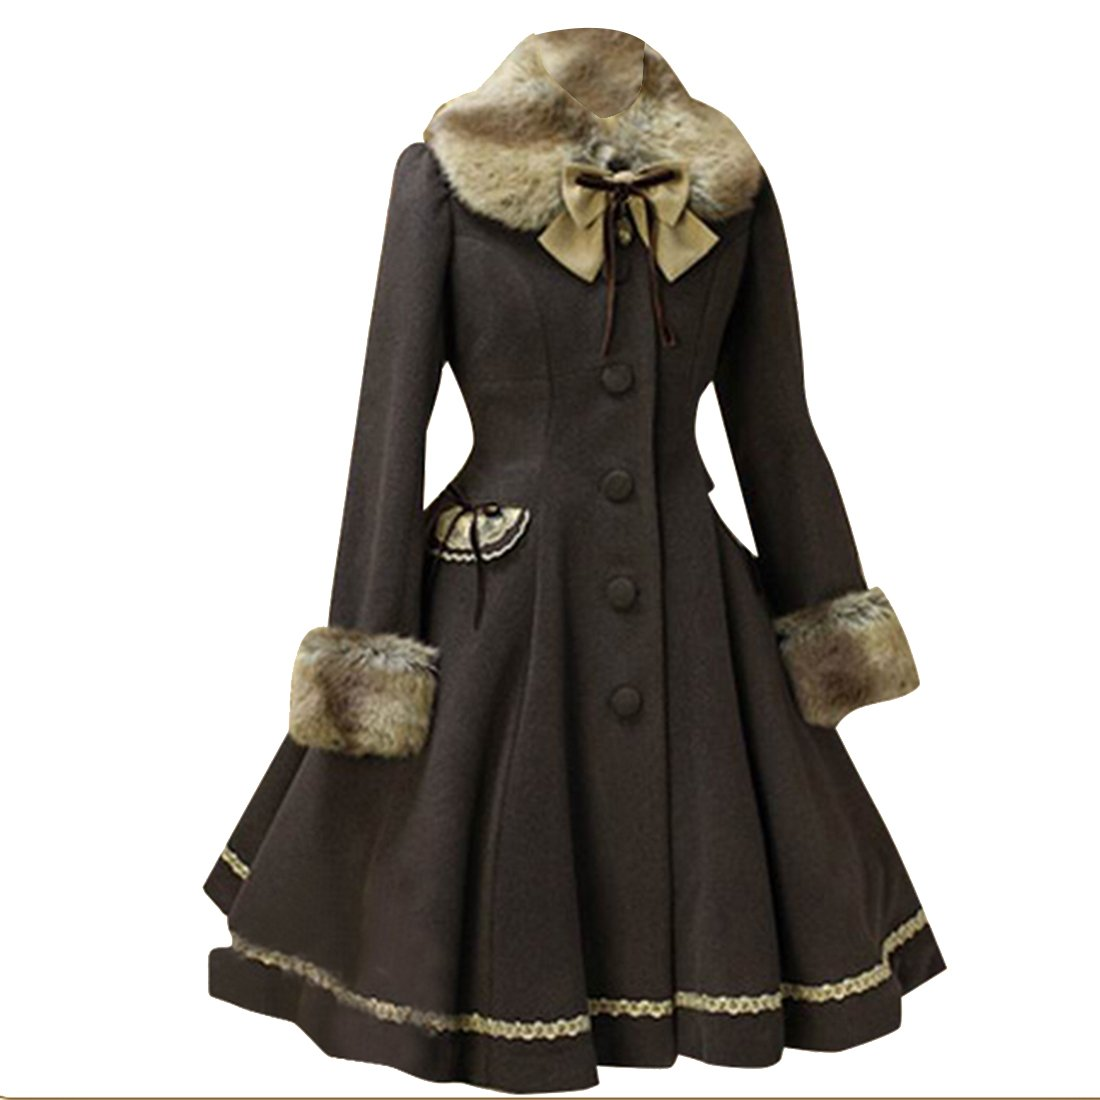 Partiss Womens Winter Faux Fur Sweet Classic Lolita Overcoat Trenchcoat, Chinese XL, Dark Coffee by Partiss